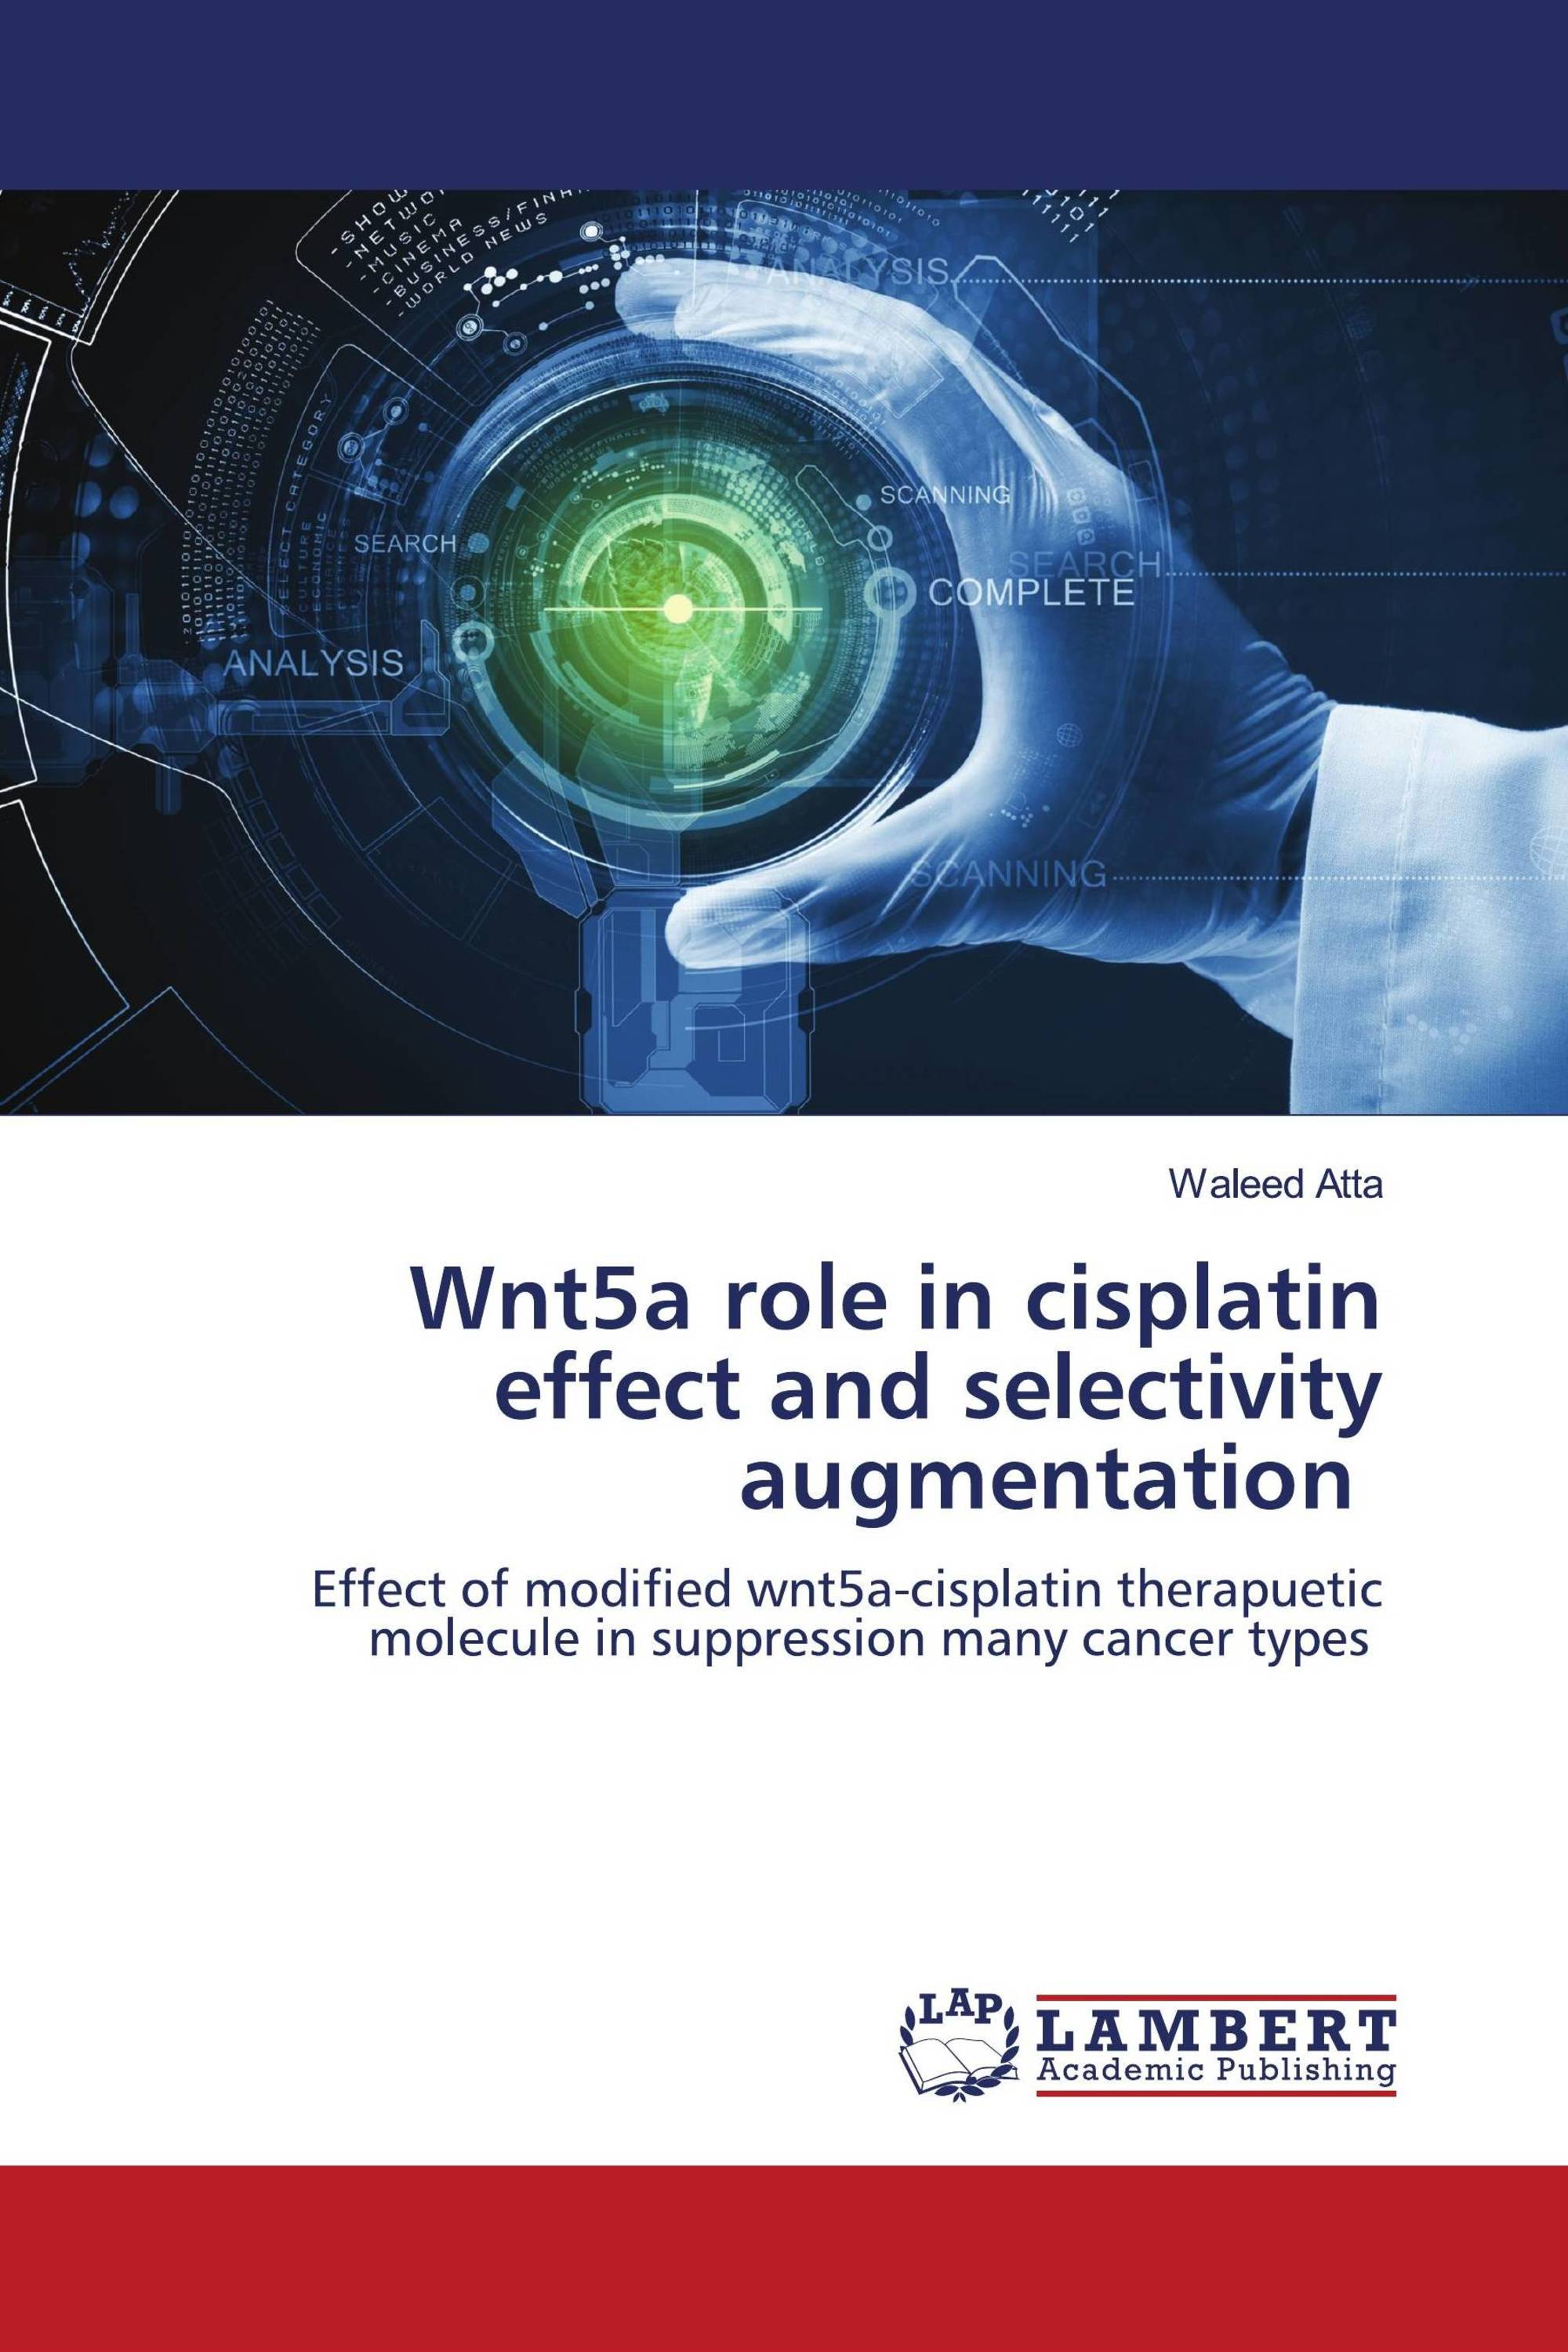 Wnt5a role in cisplatin effect and selectivity augmentation